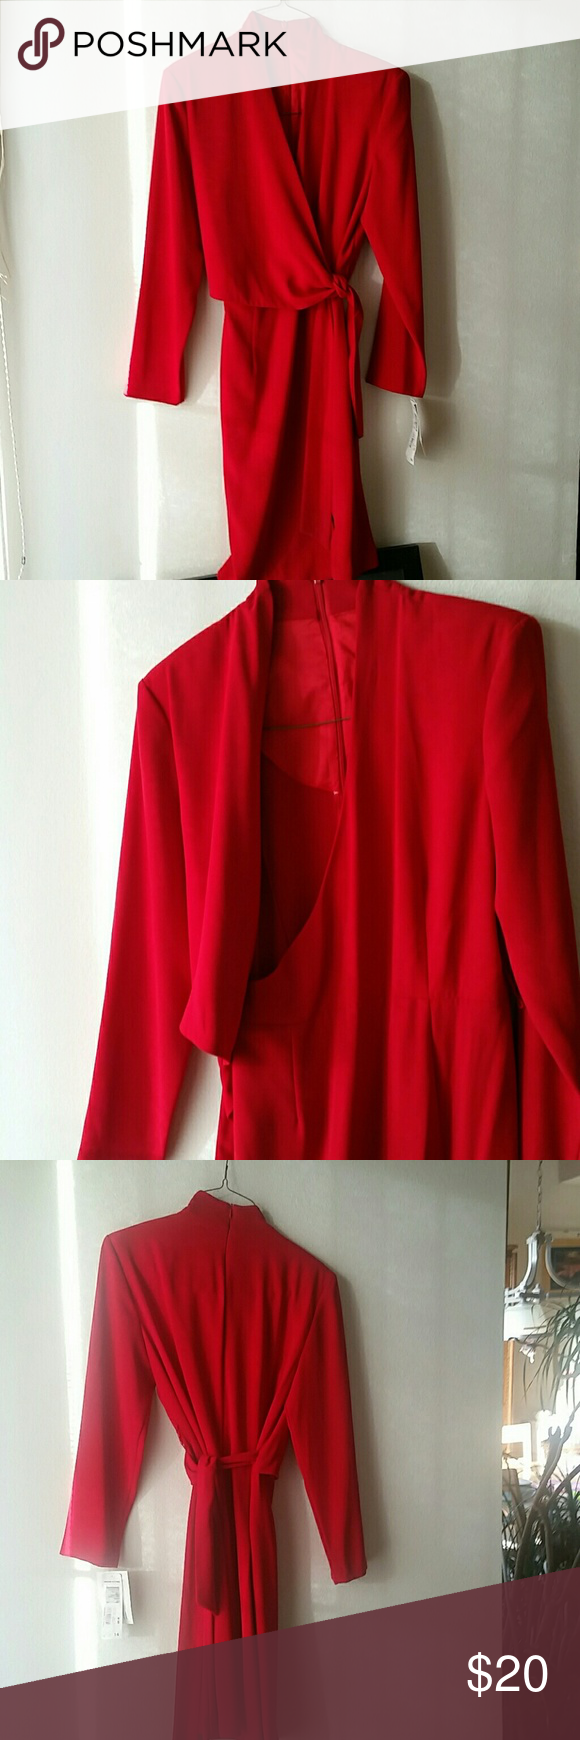 Beautiful red wrap dress nwt red wrap dress cherry red and wrap